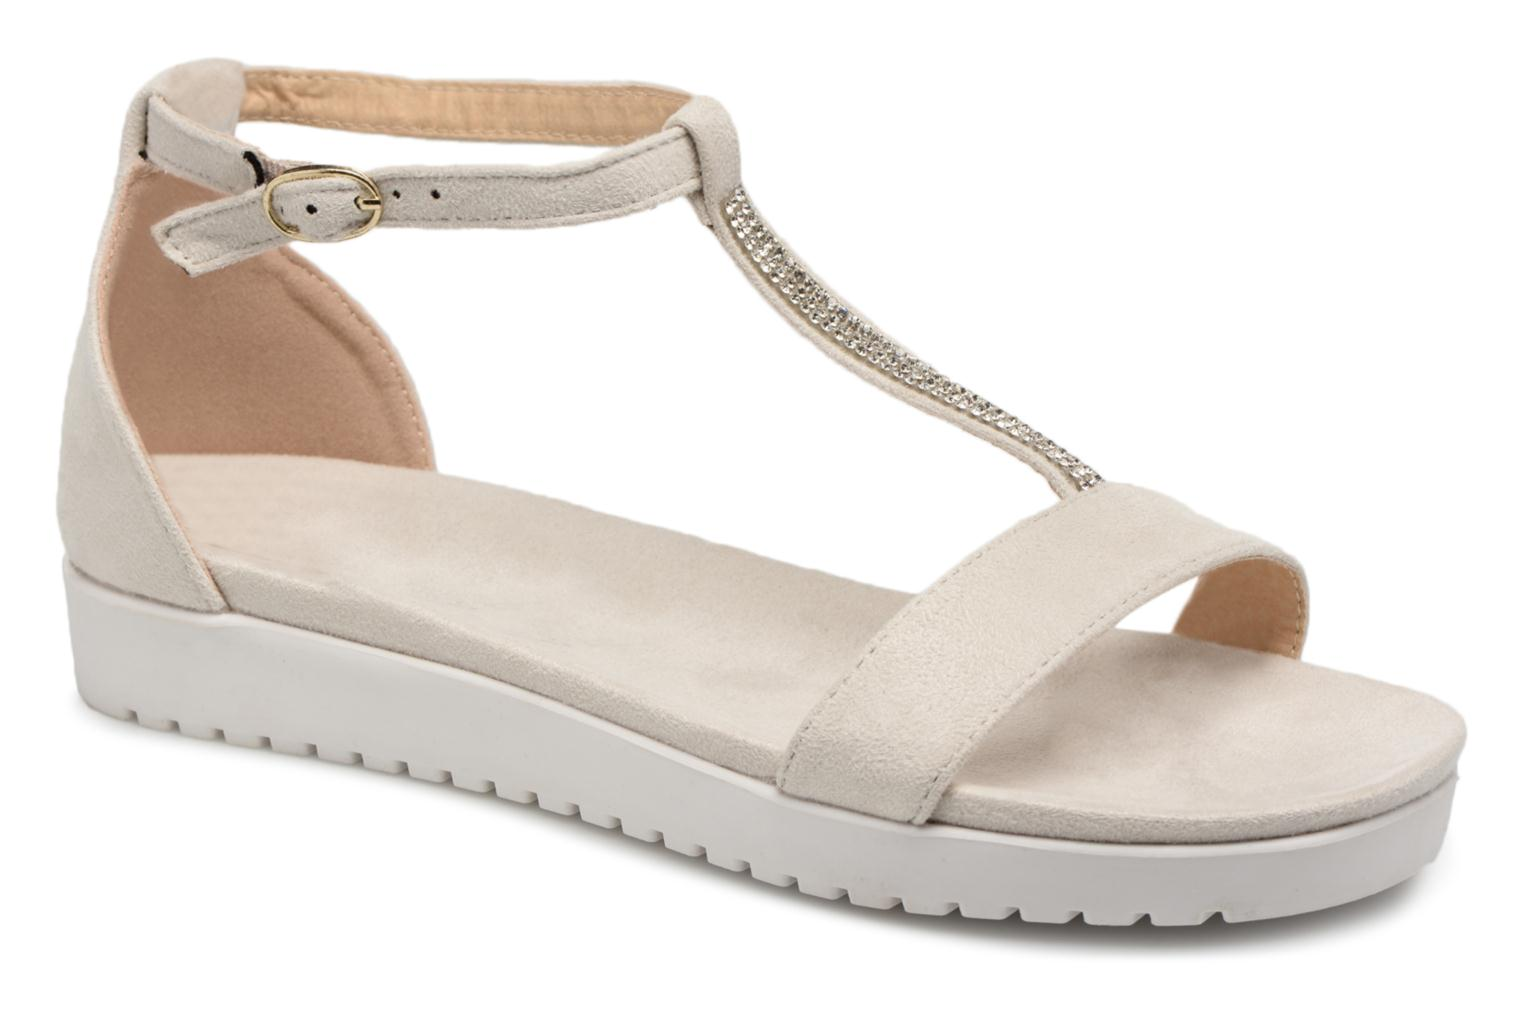 Marques Chaussure femme Refresh femme 63562 Ice